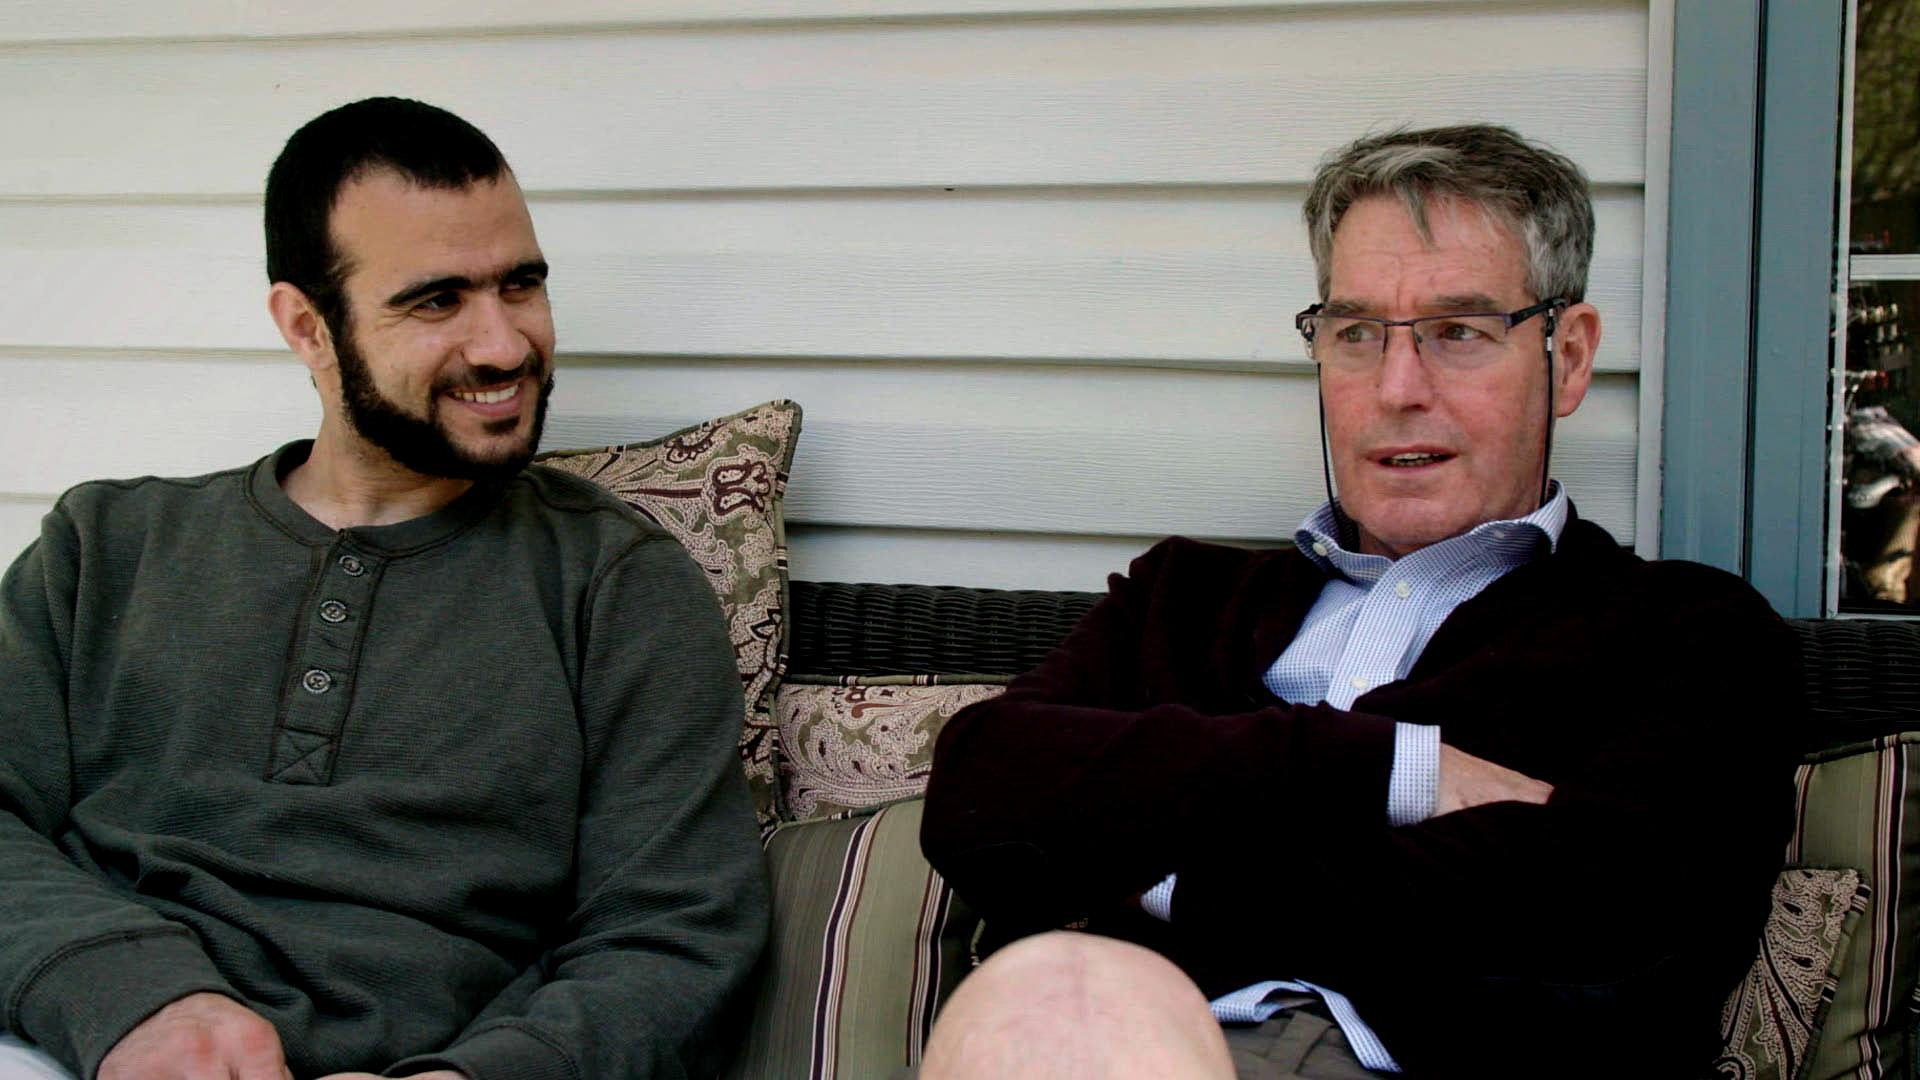 Hear what Omar Khadr's lawyer has to say at lunch on Tuesday, Sept. 15.